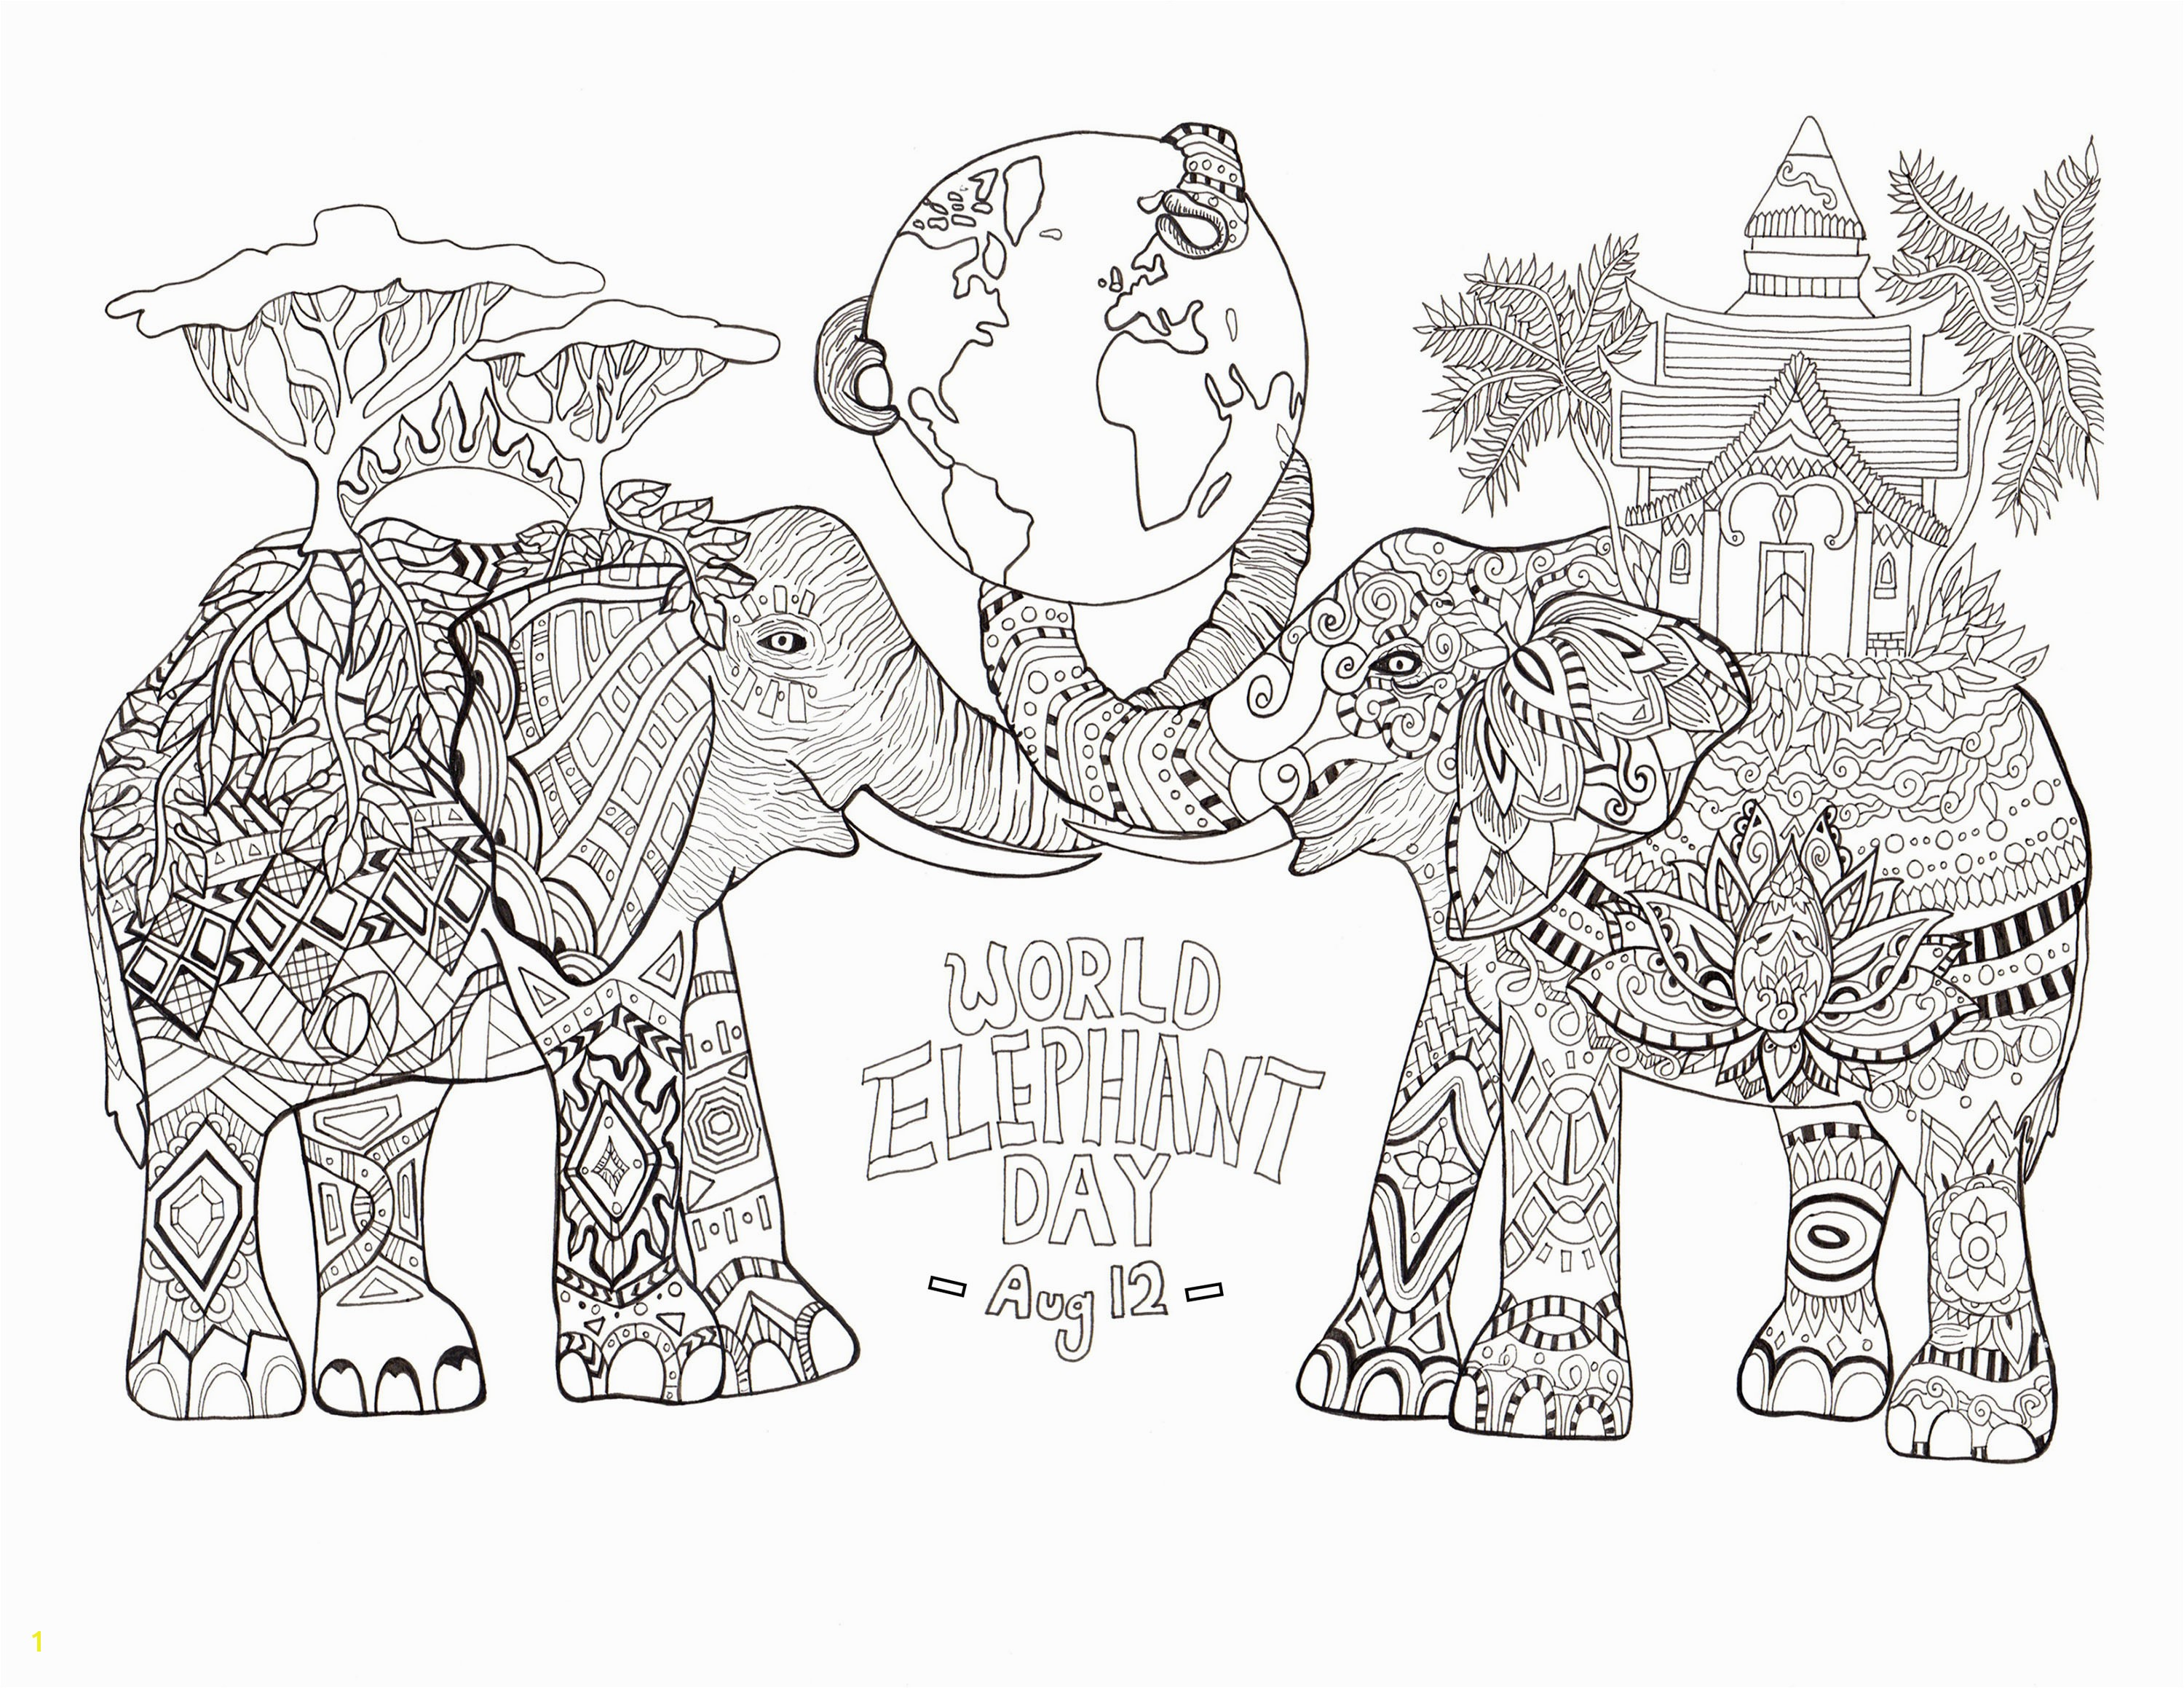 Coloring page drawn by Rylee Postulo for the World Elephant Day Aug 12